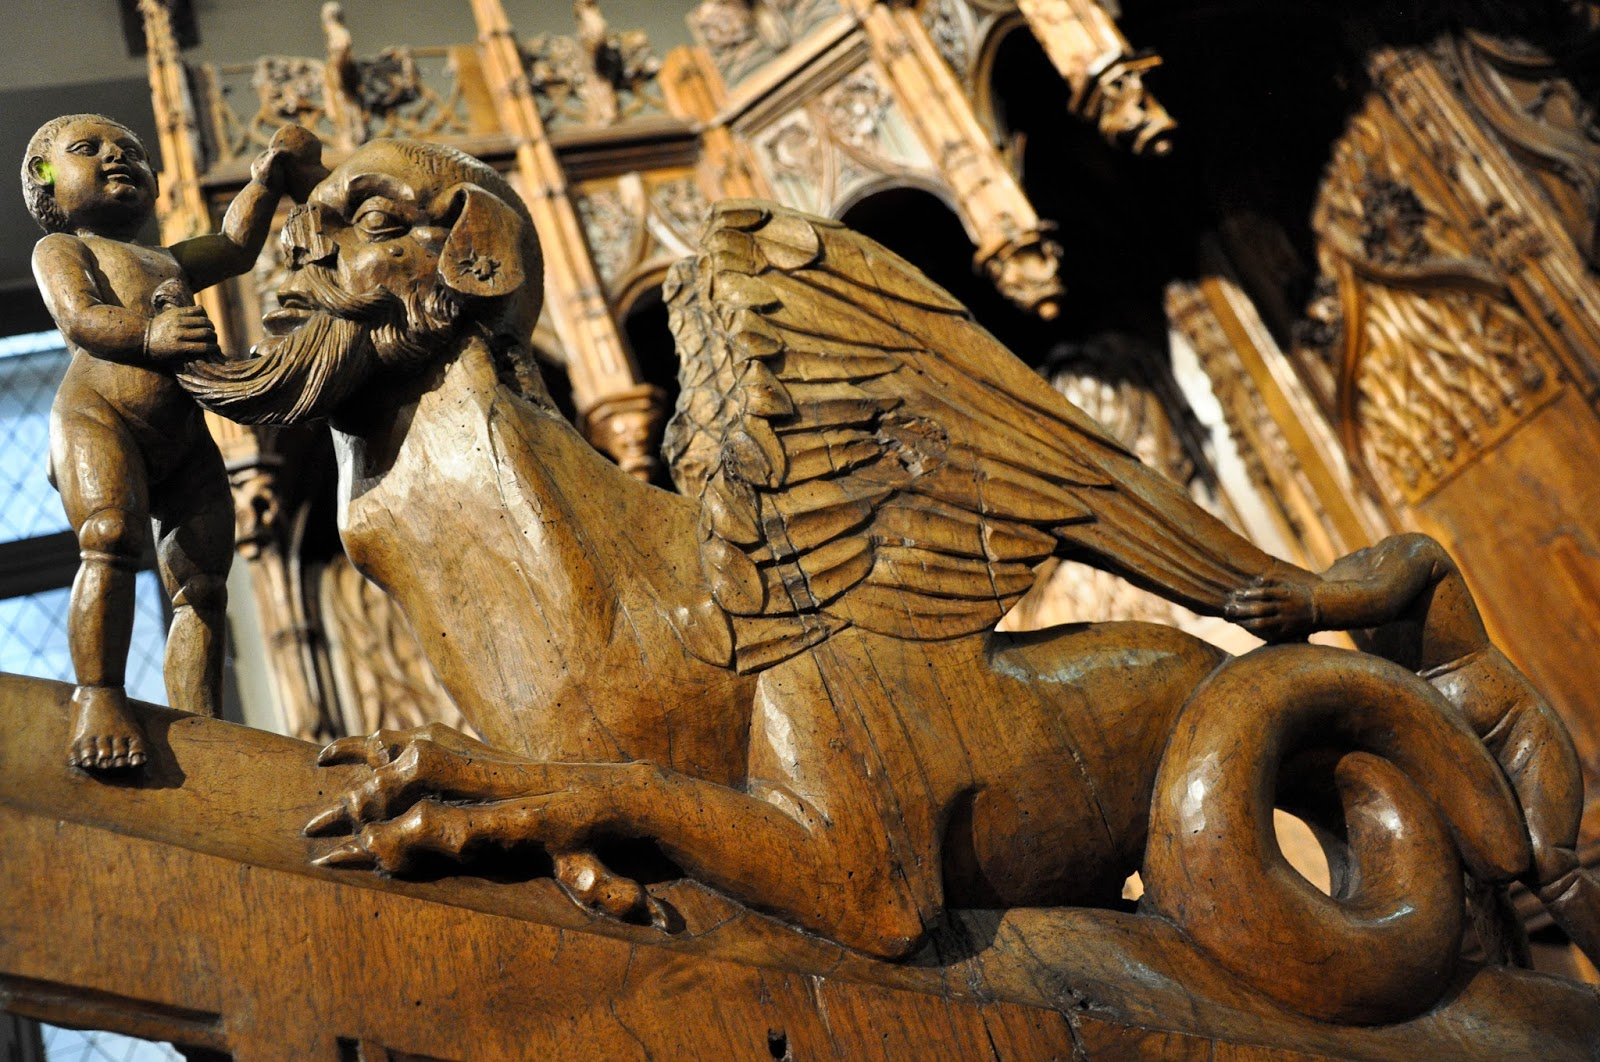 A detail of a wooden altar, Antique Art Museum, Palazzo Madama, Turin, Italy